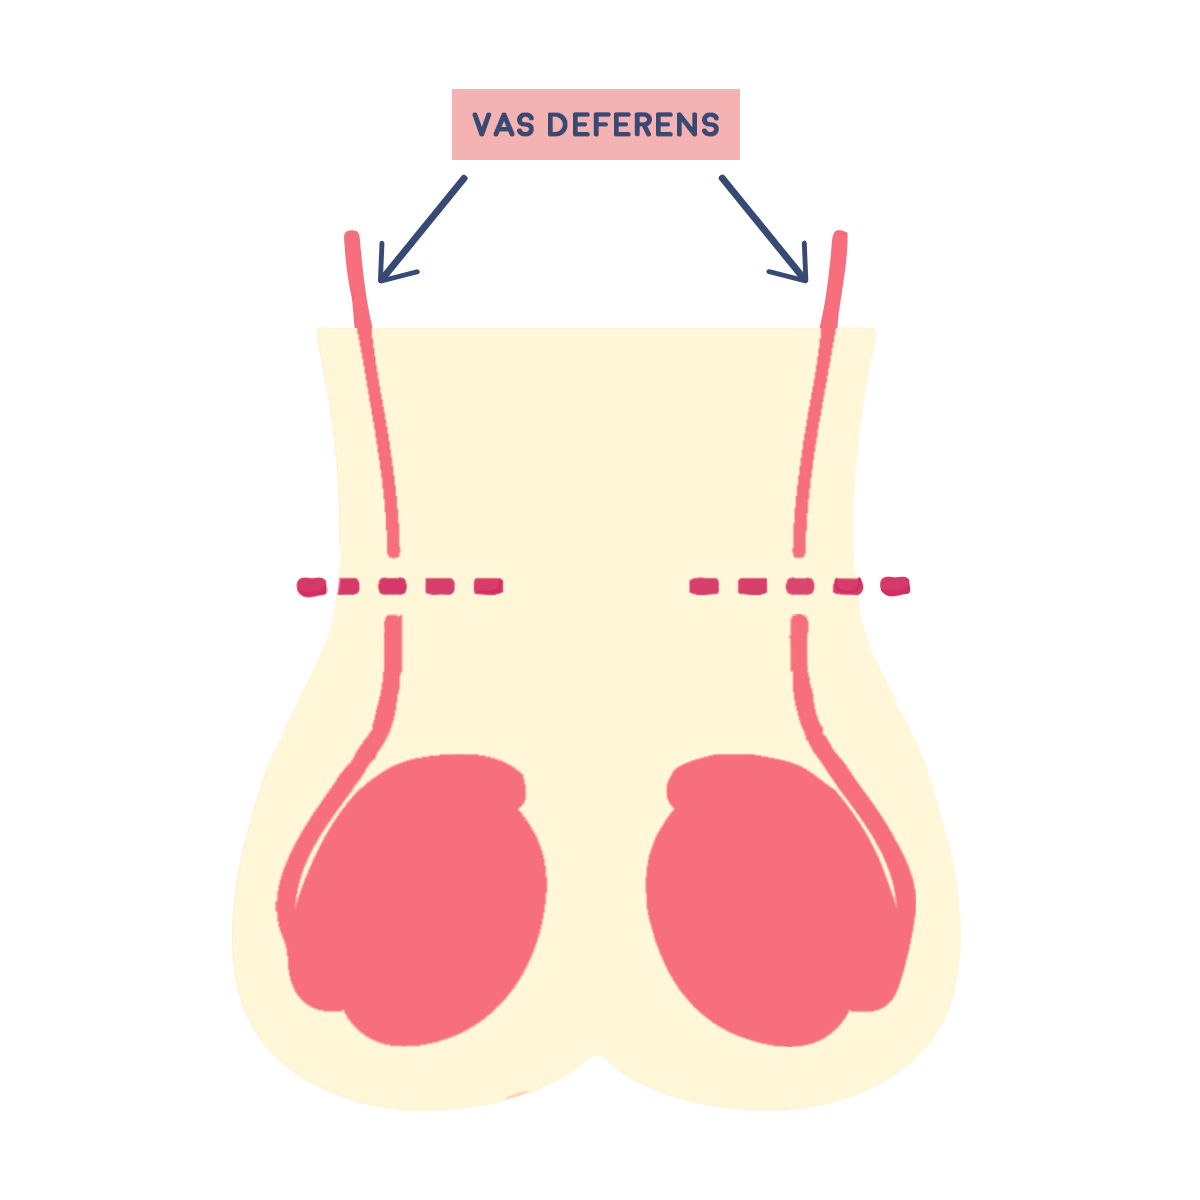 Image of Vas Deferens